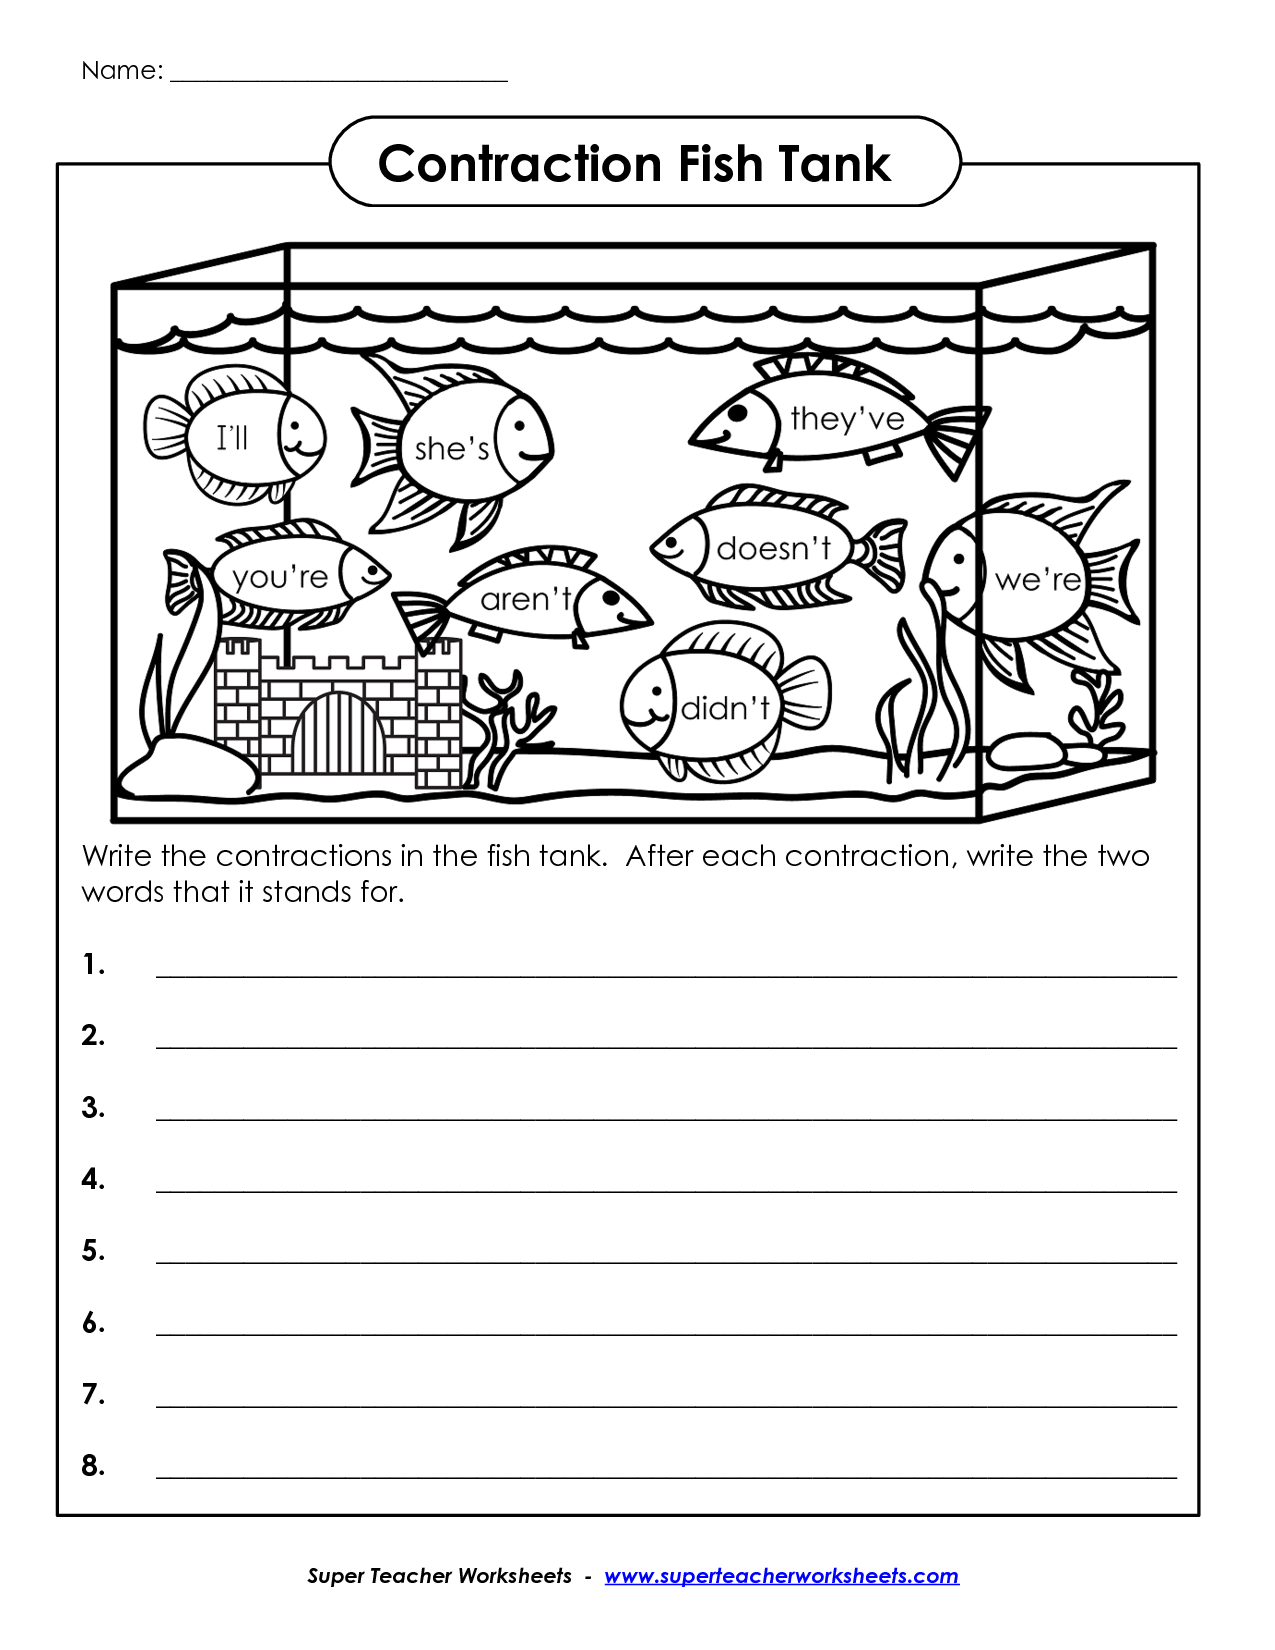 Contraction Worksheet For 1st